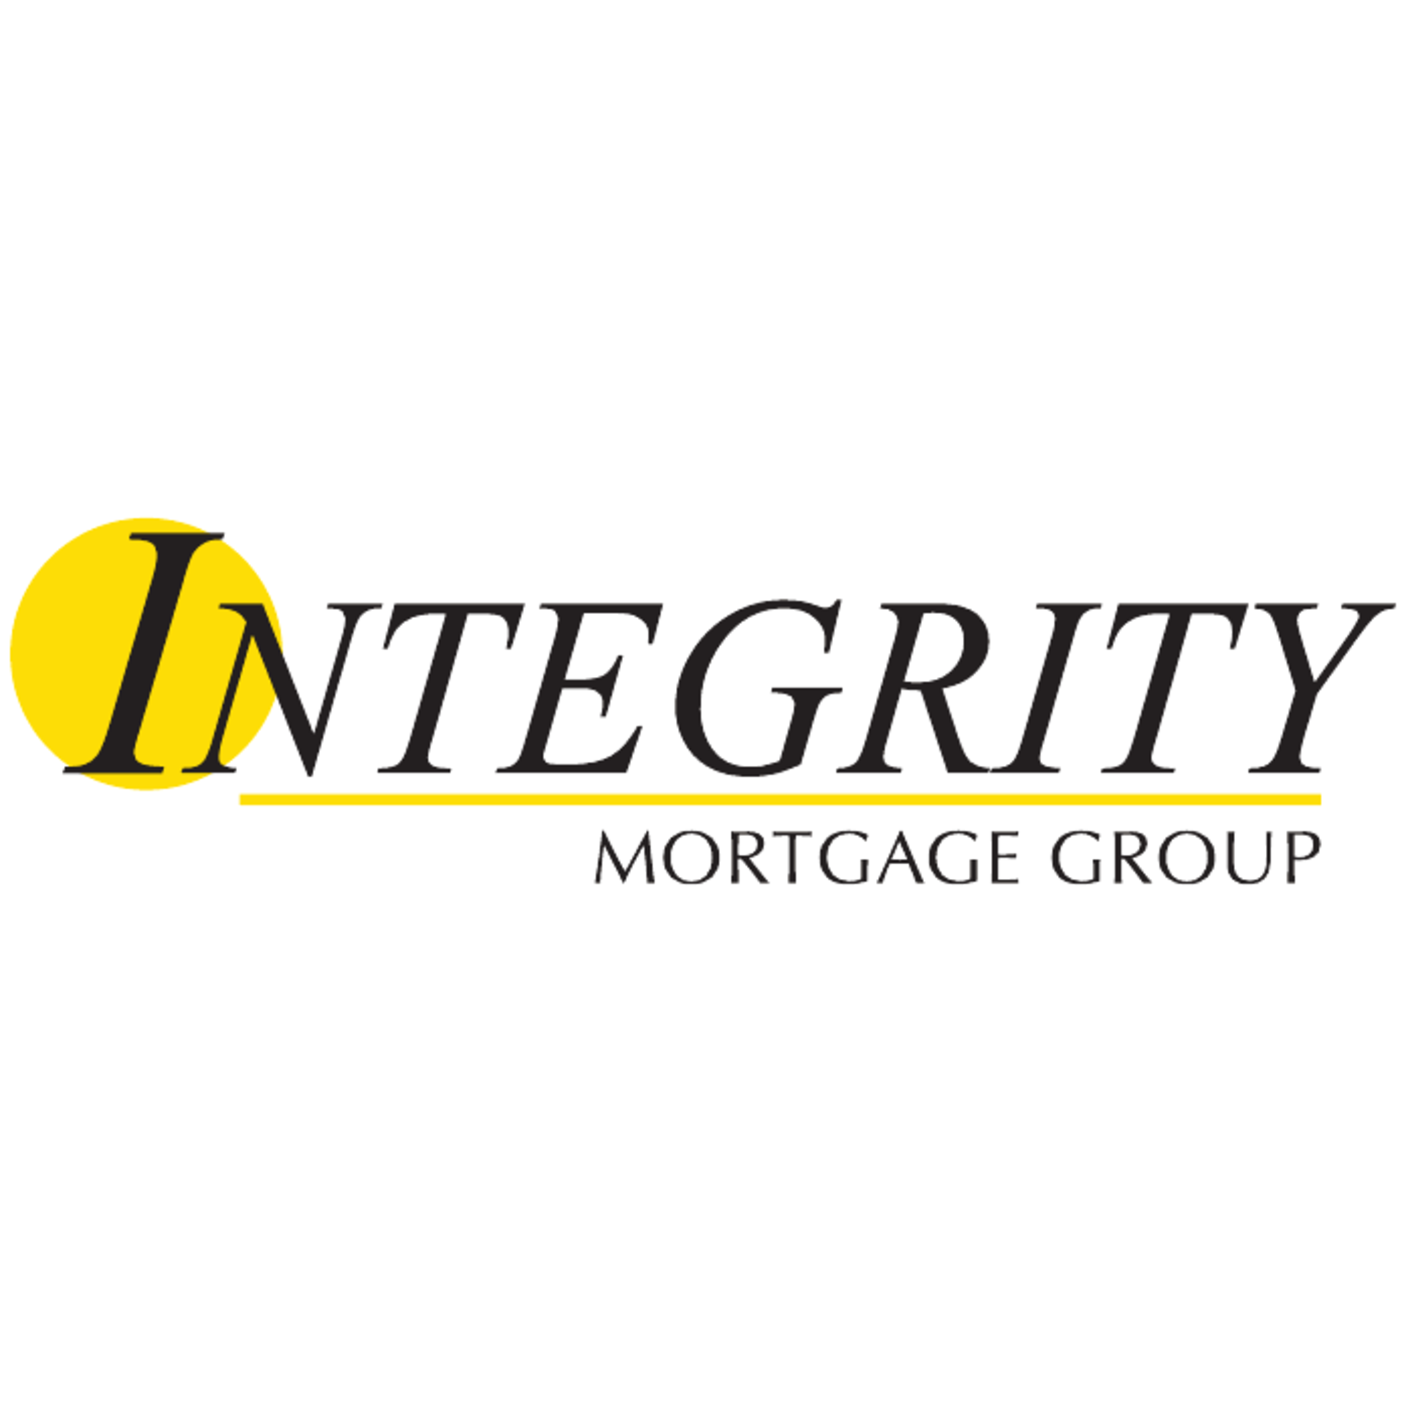 Lee Ann Stein - Integrity Mortgage Group